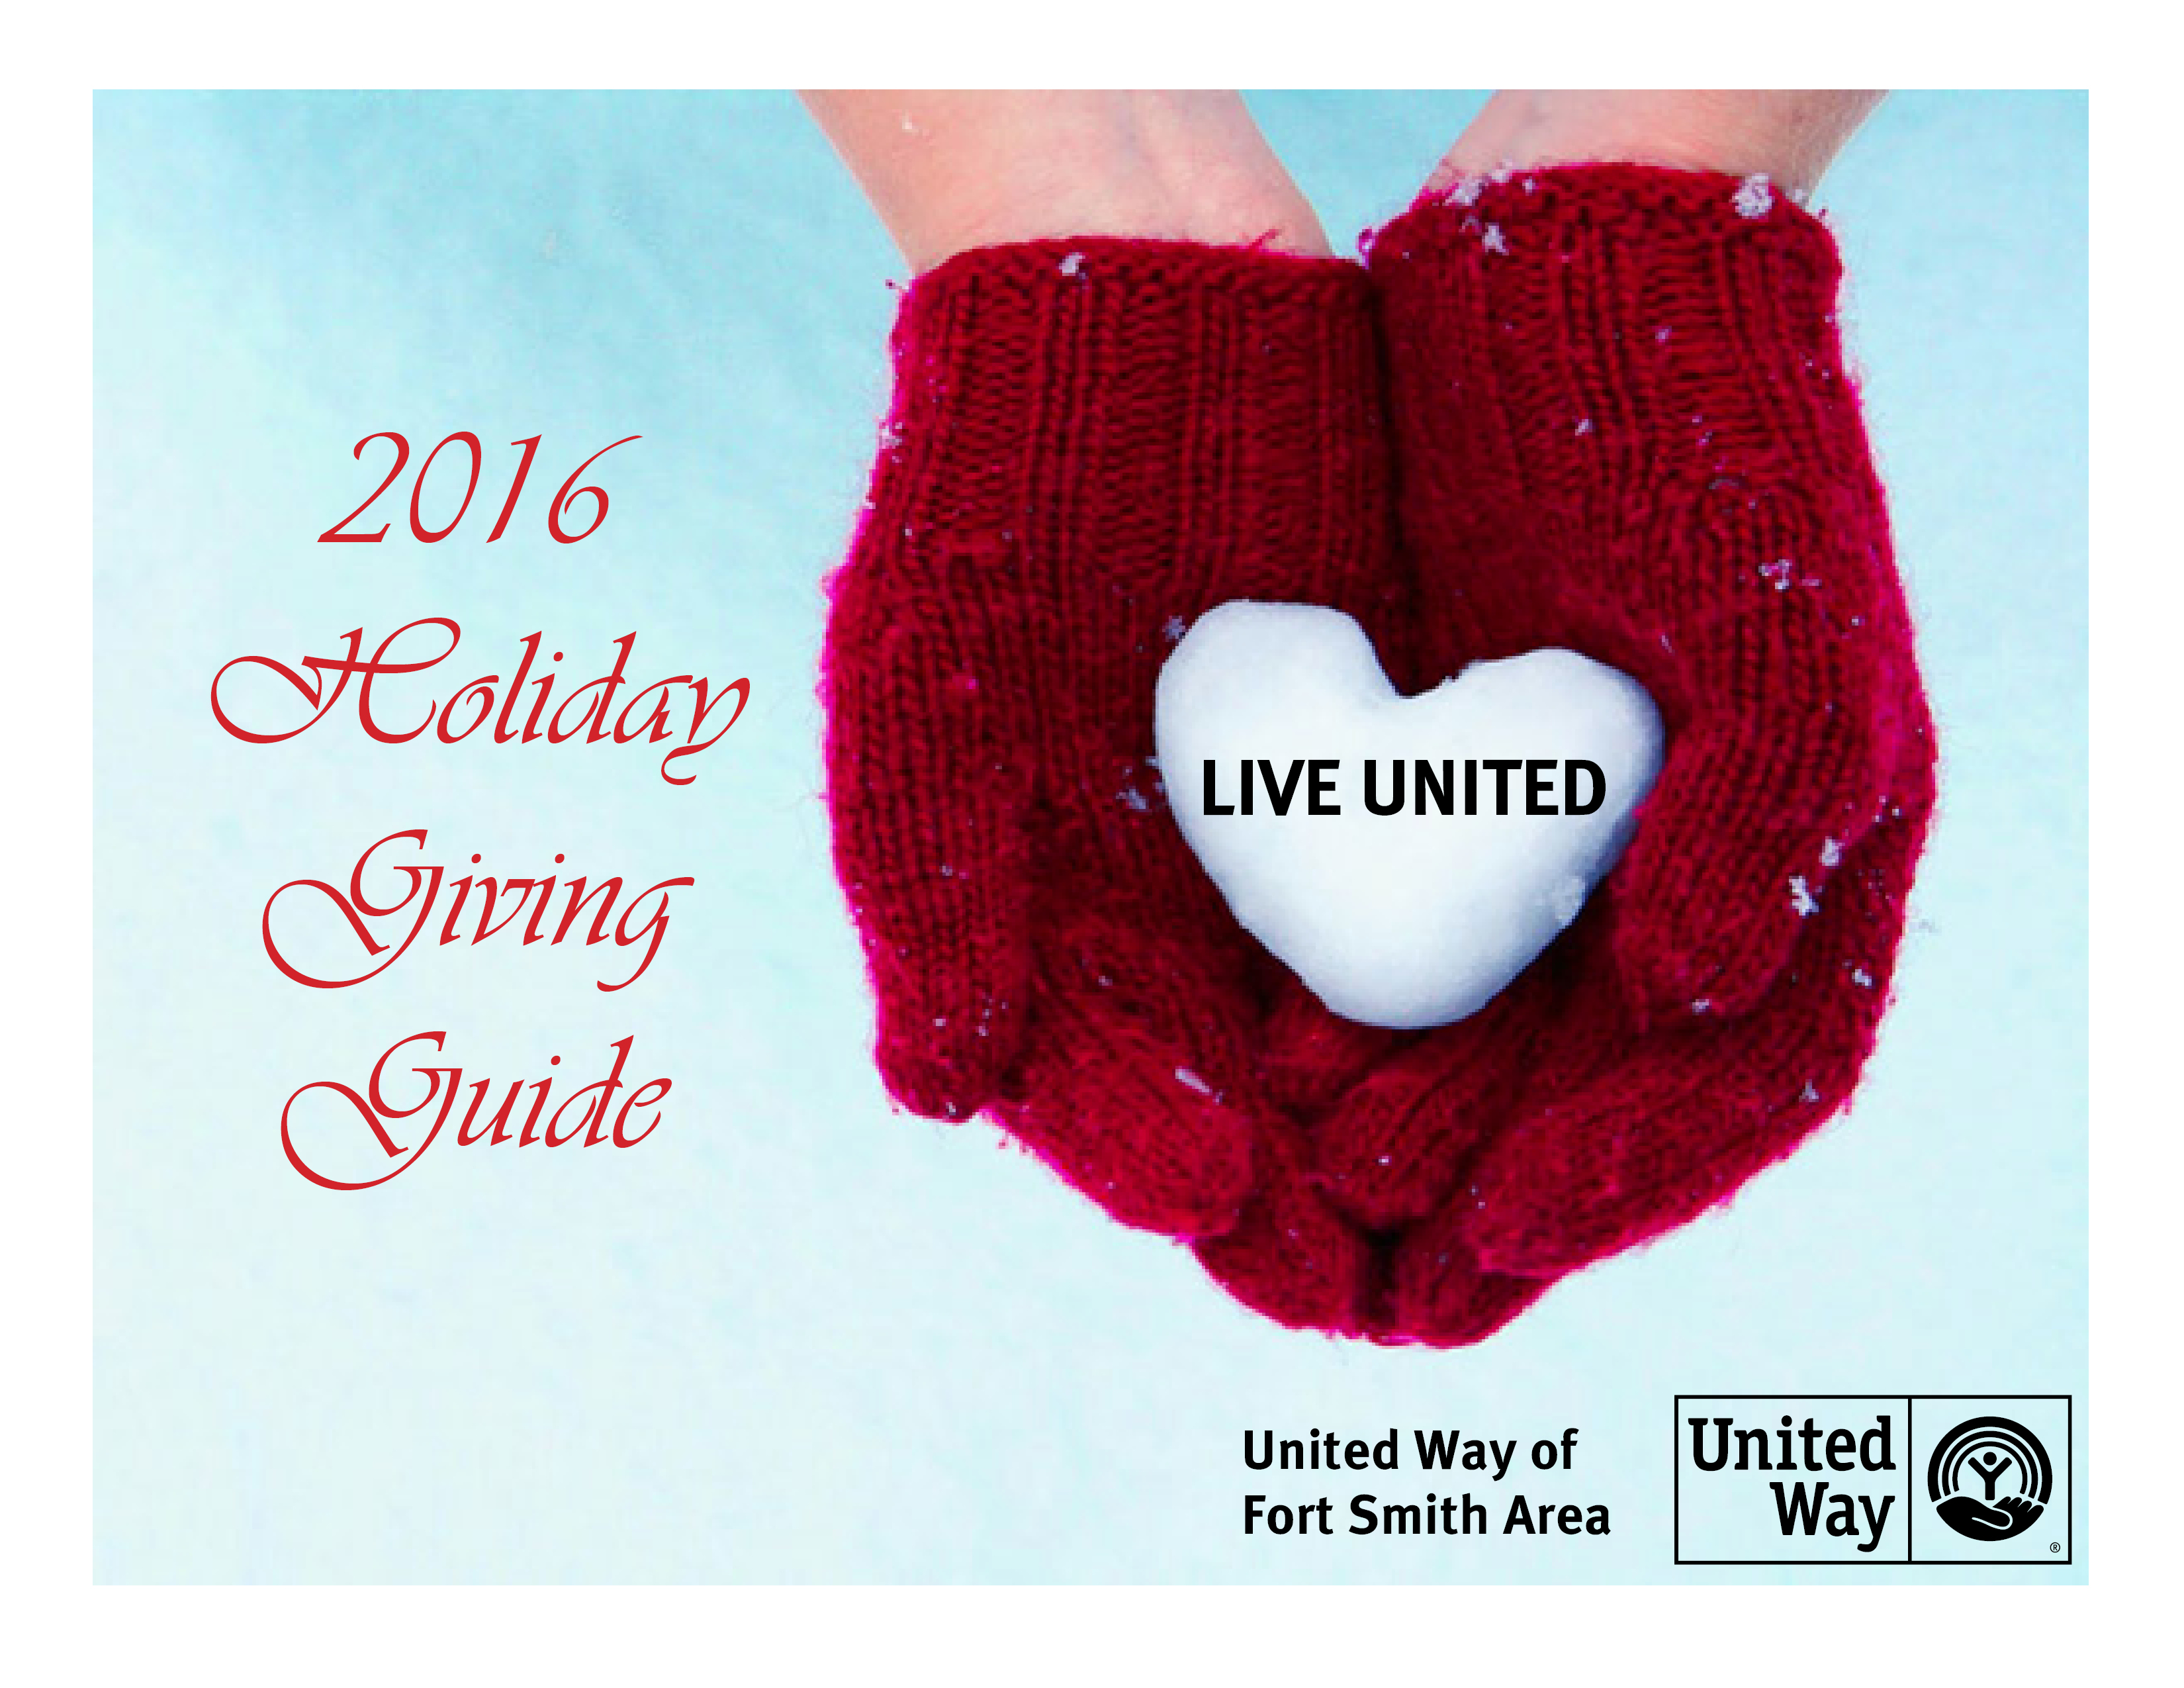 2016-uwfs-holiday-giving-guide